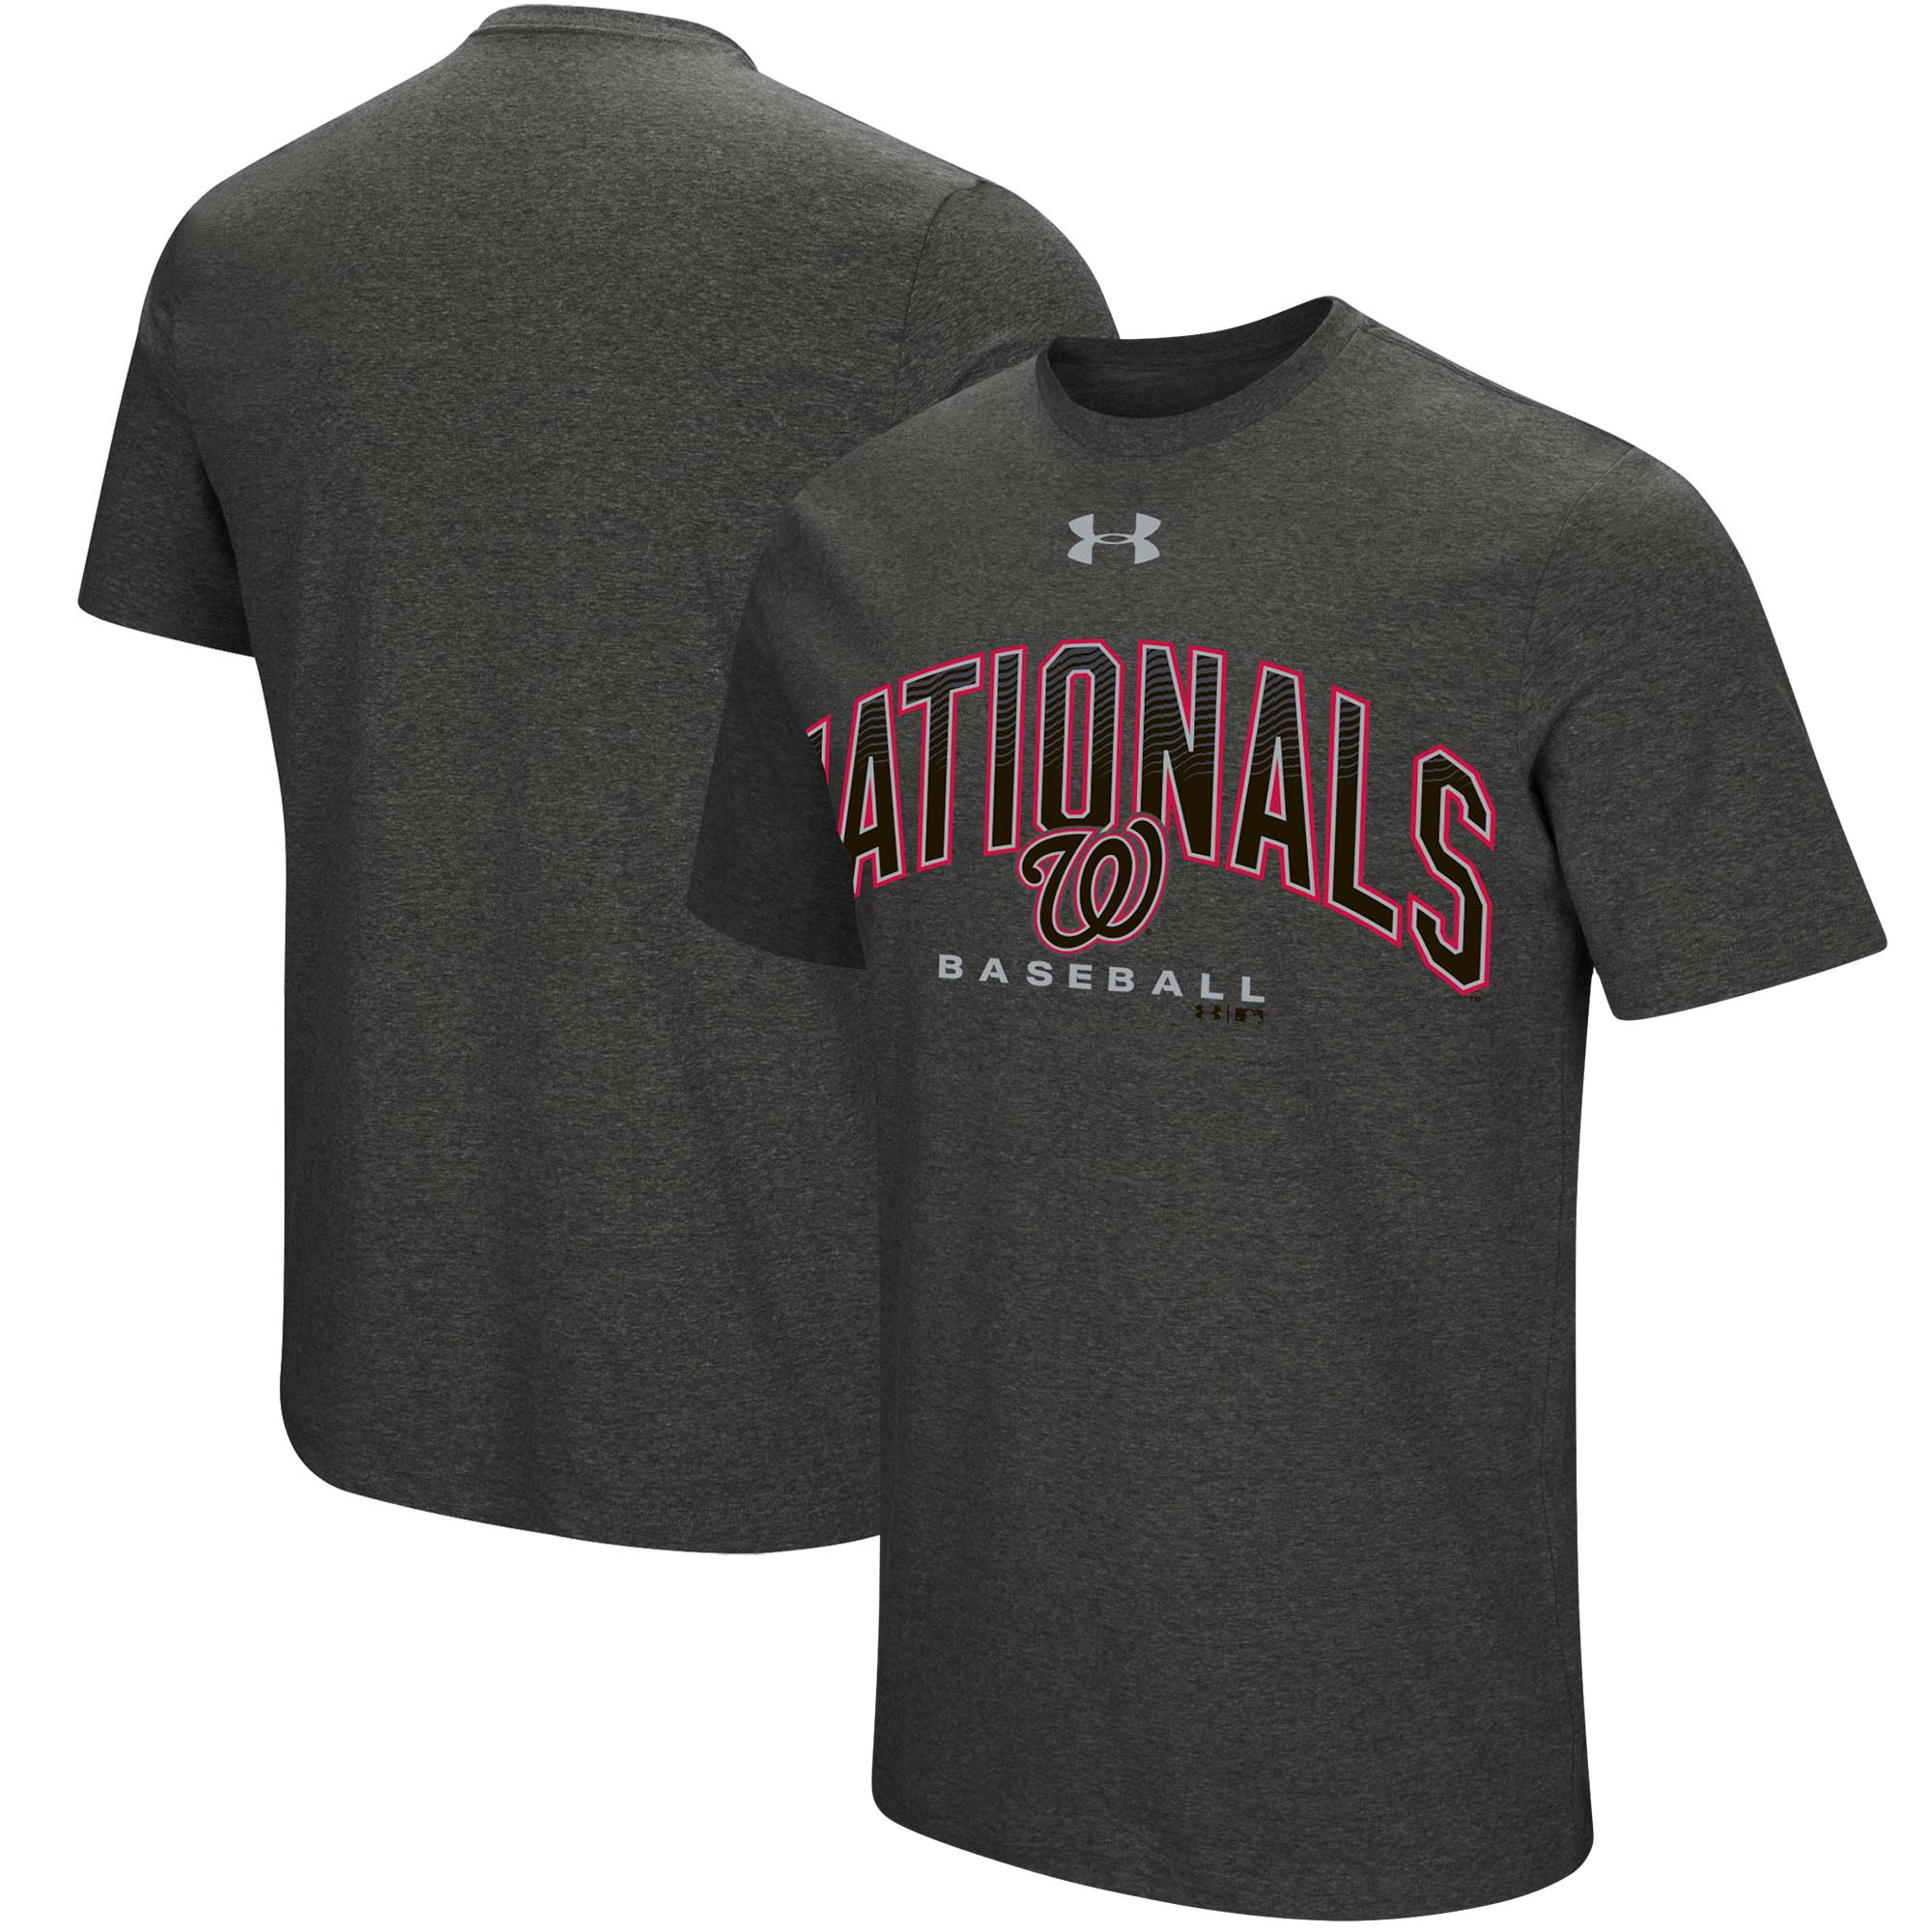 Washington Nationals Under Armour Passion Reflective Arch T-Shirt - Heathered Charcoal